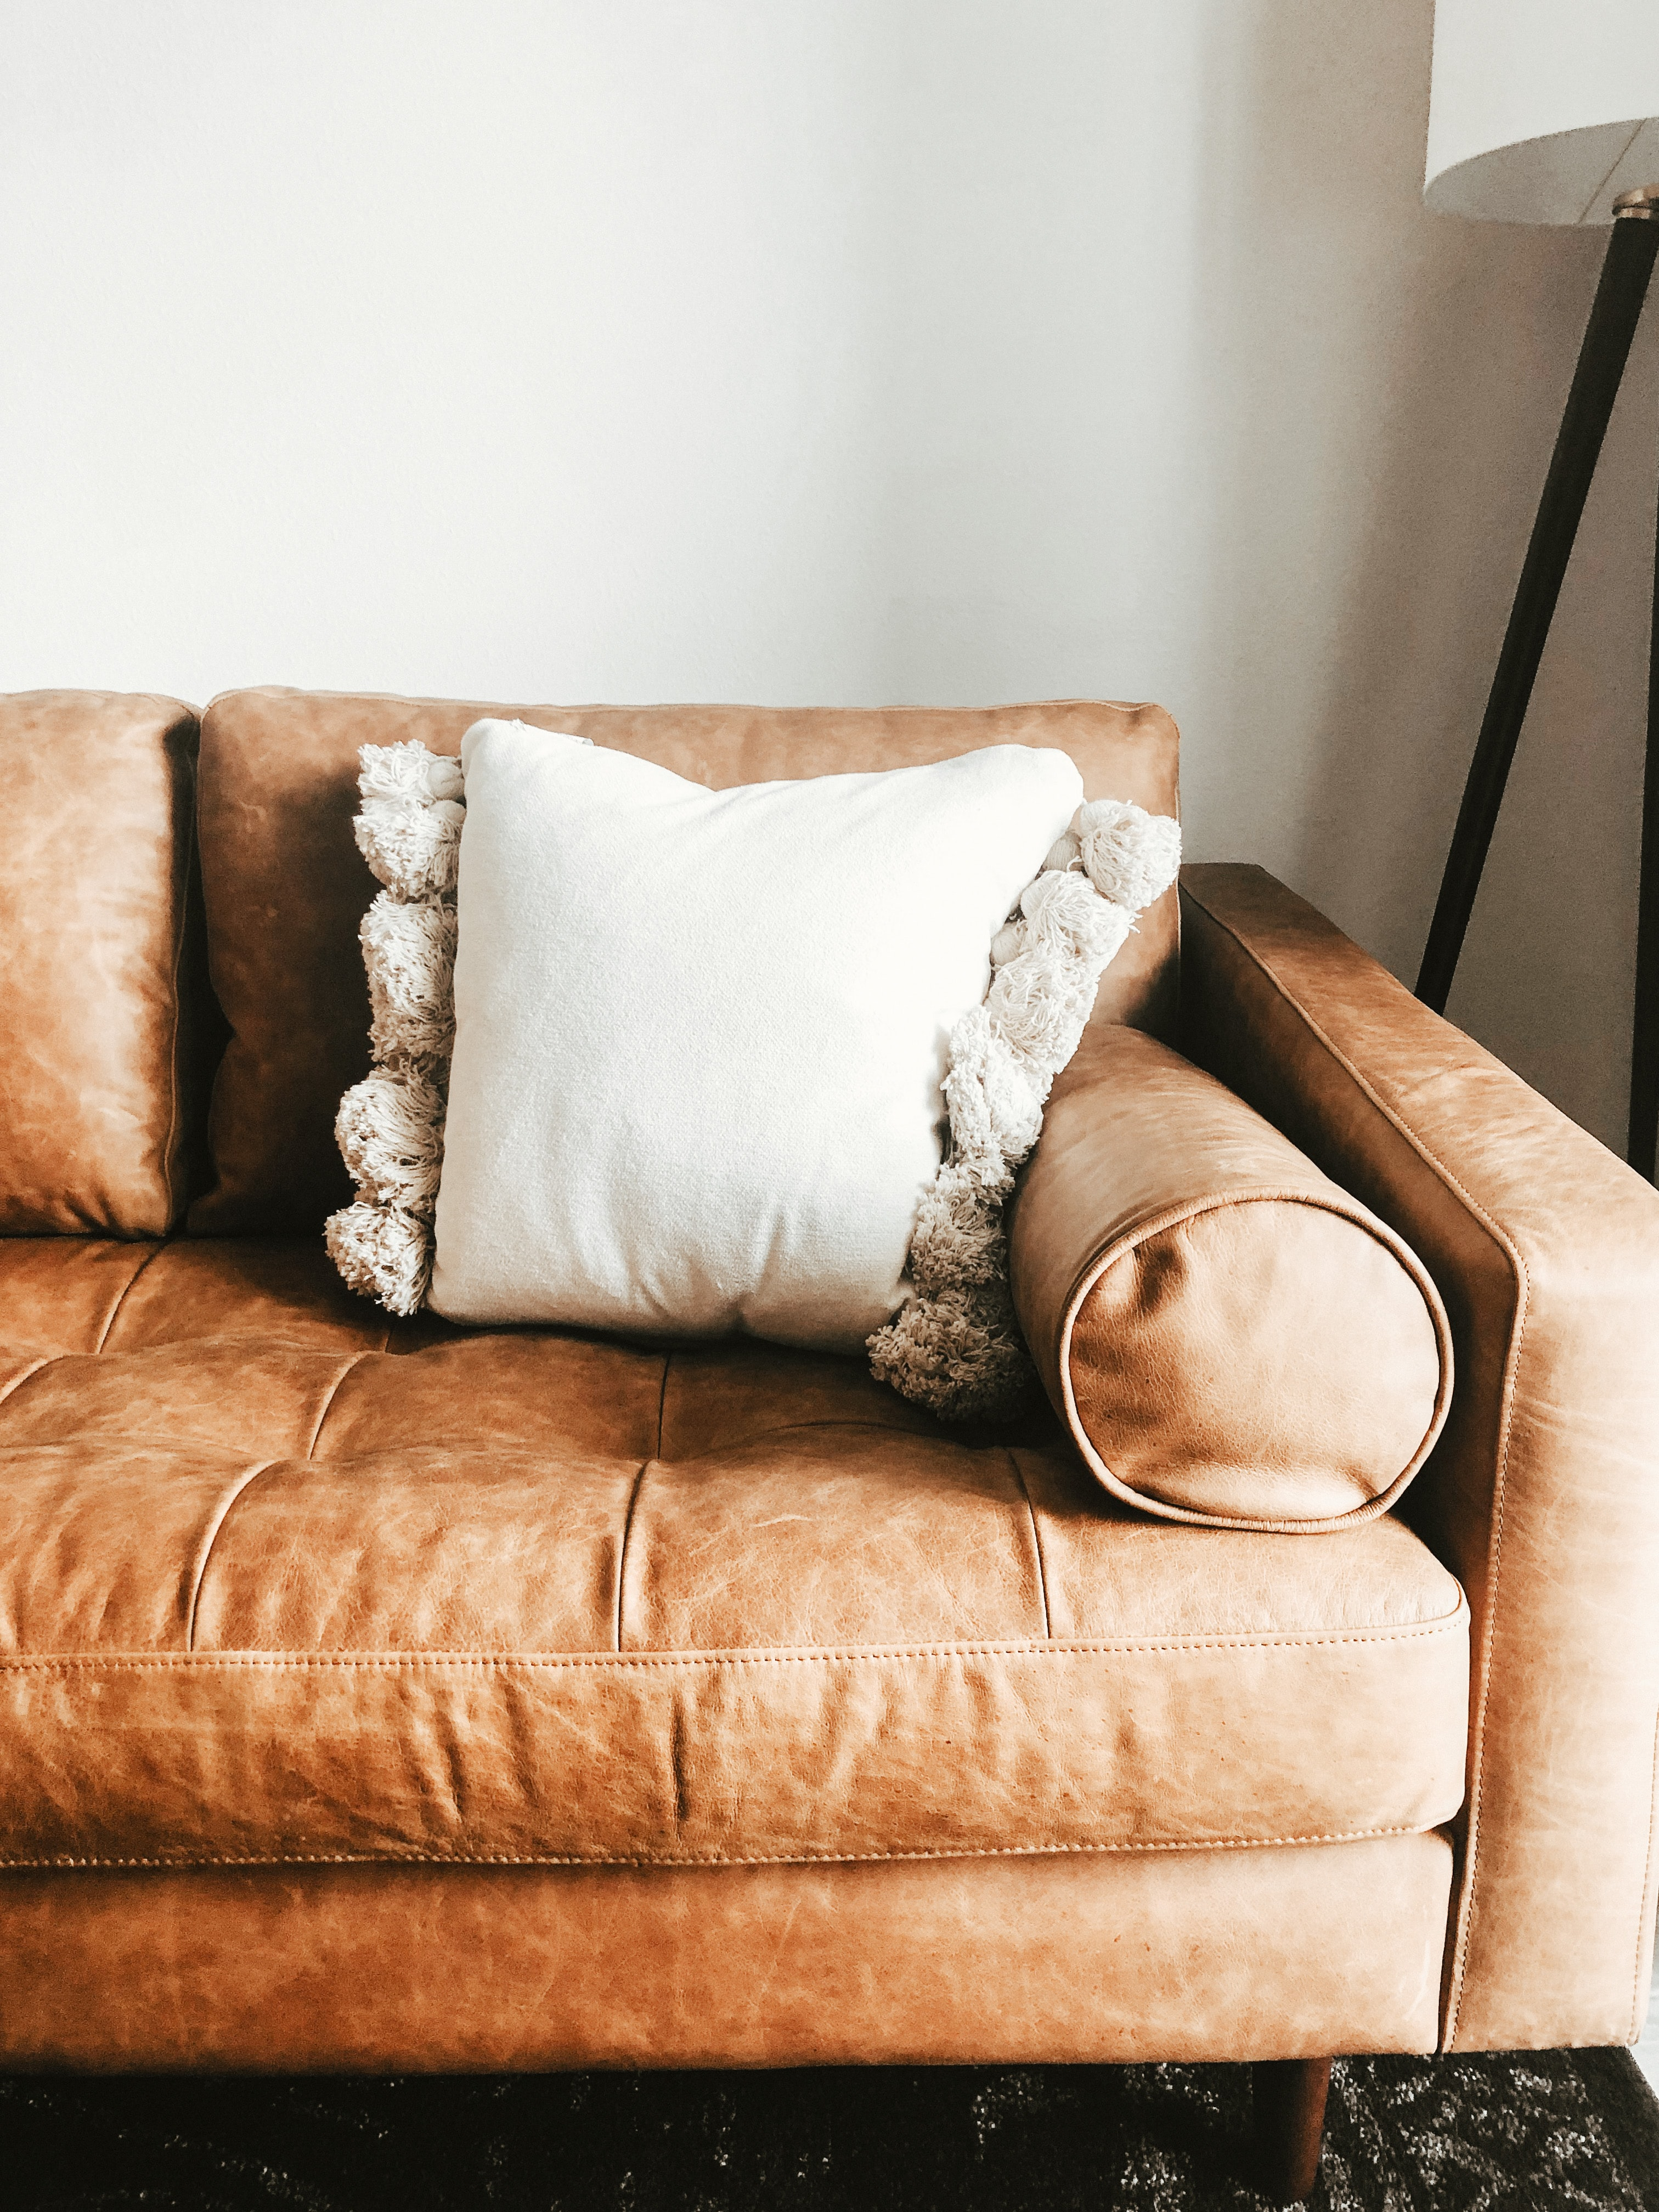 The Best Throw Pillows For A Leather Couch